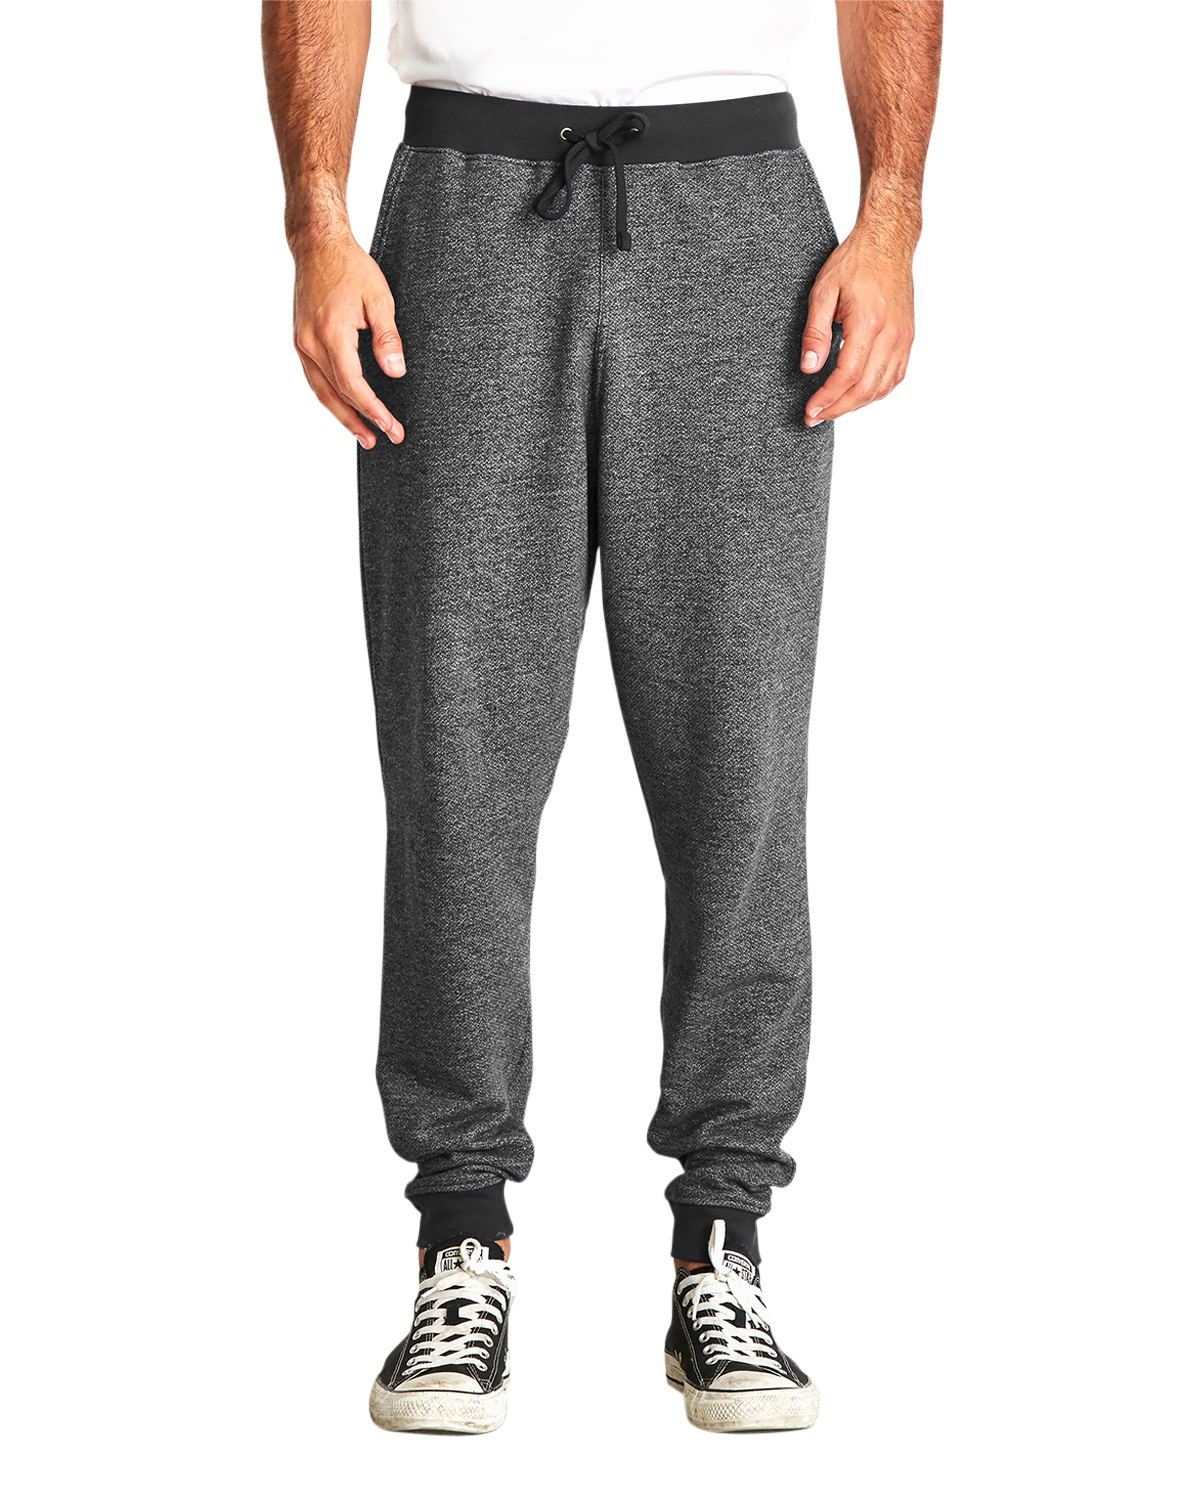 Next Level 9800 - Men's Denim Fleece Jogger